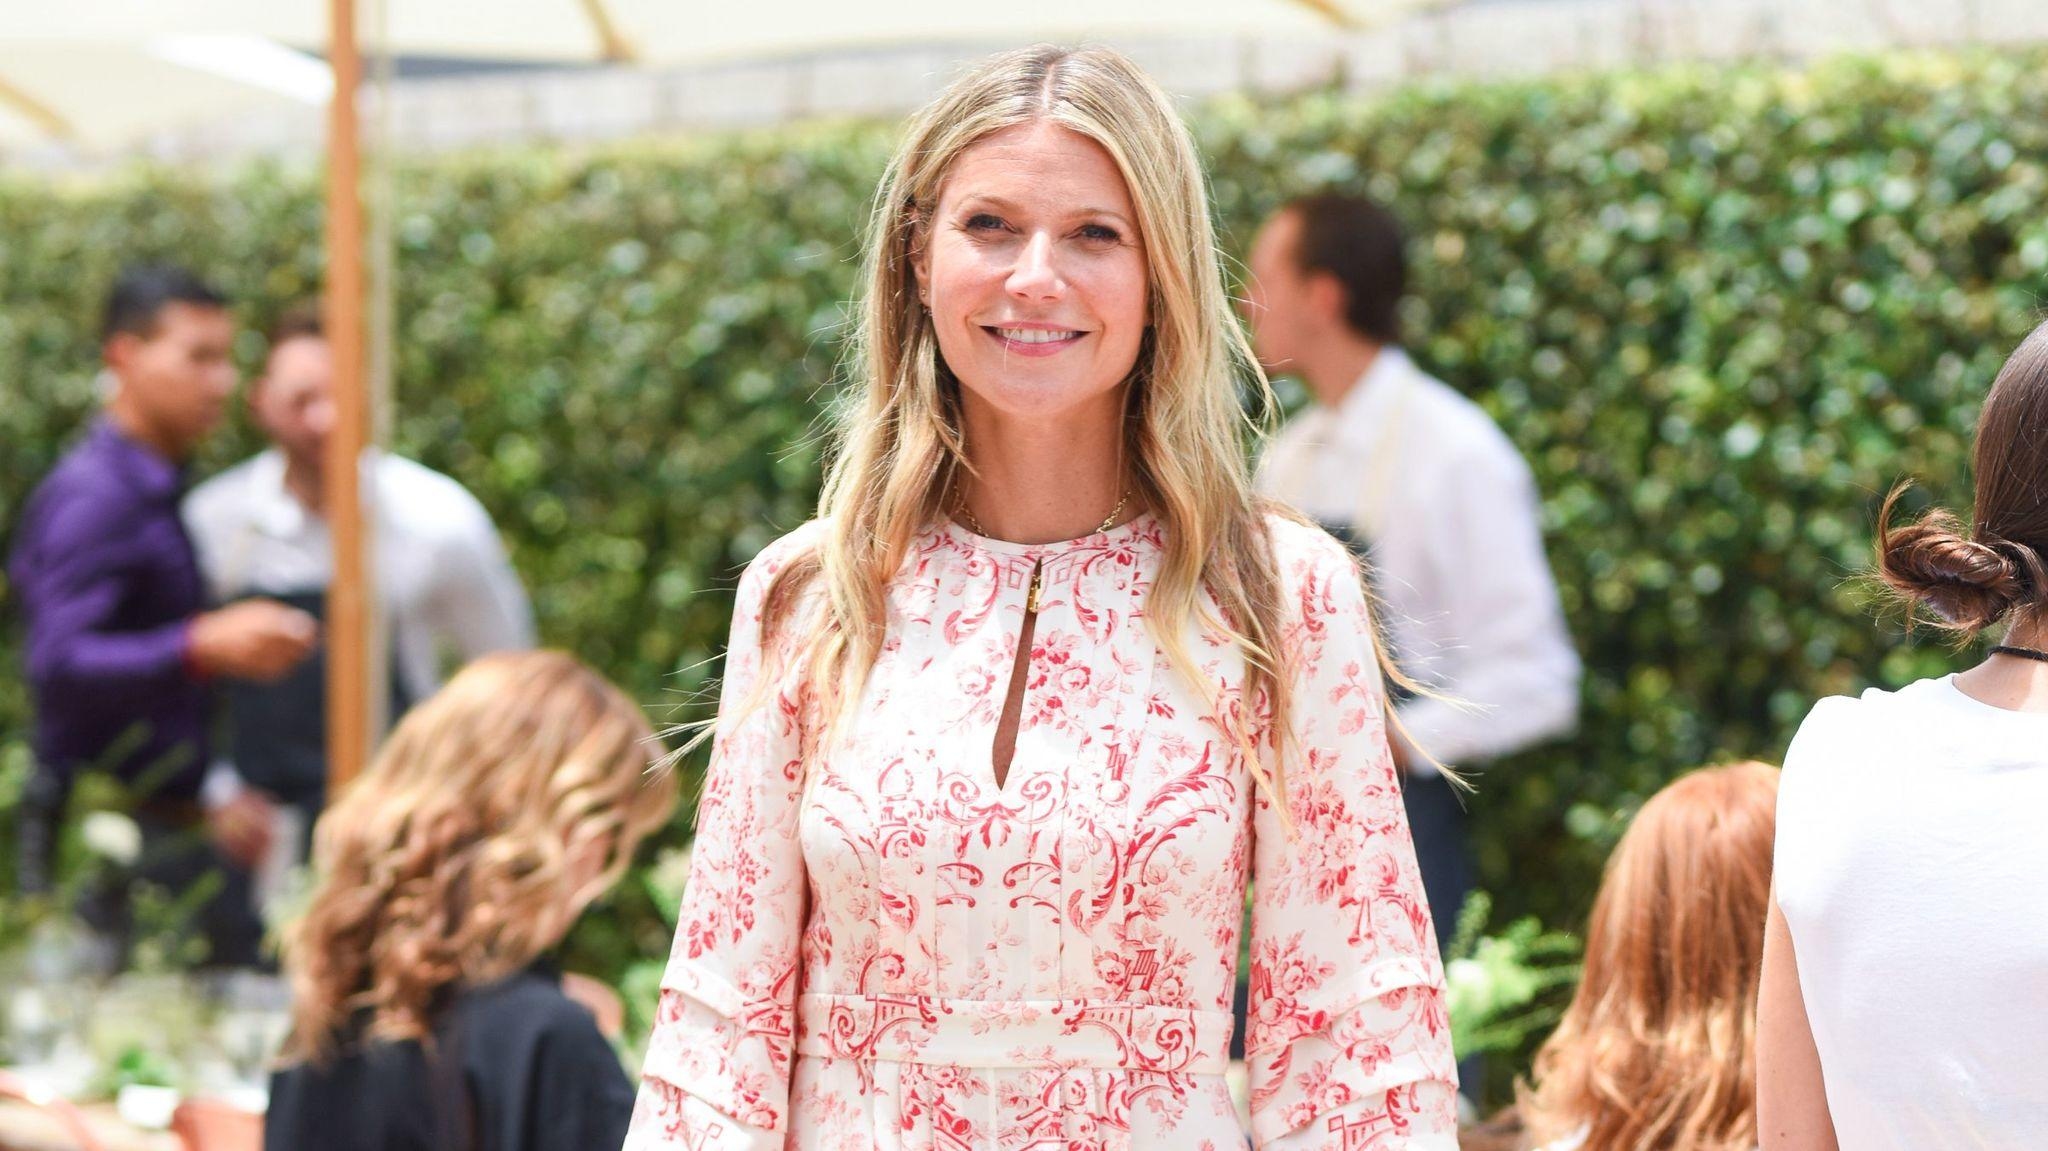 Gwyneth Paltrow opened up about Goop and guys on a recent podcast. (Owen Kolasinski / BFA.com)